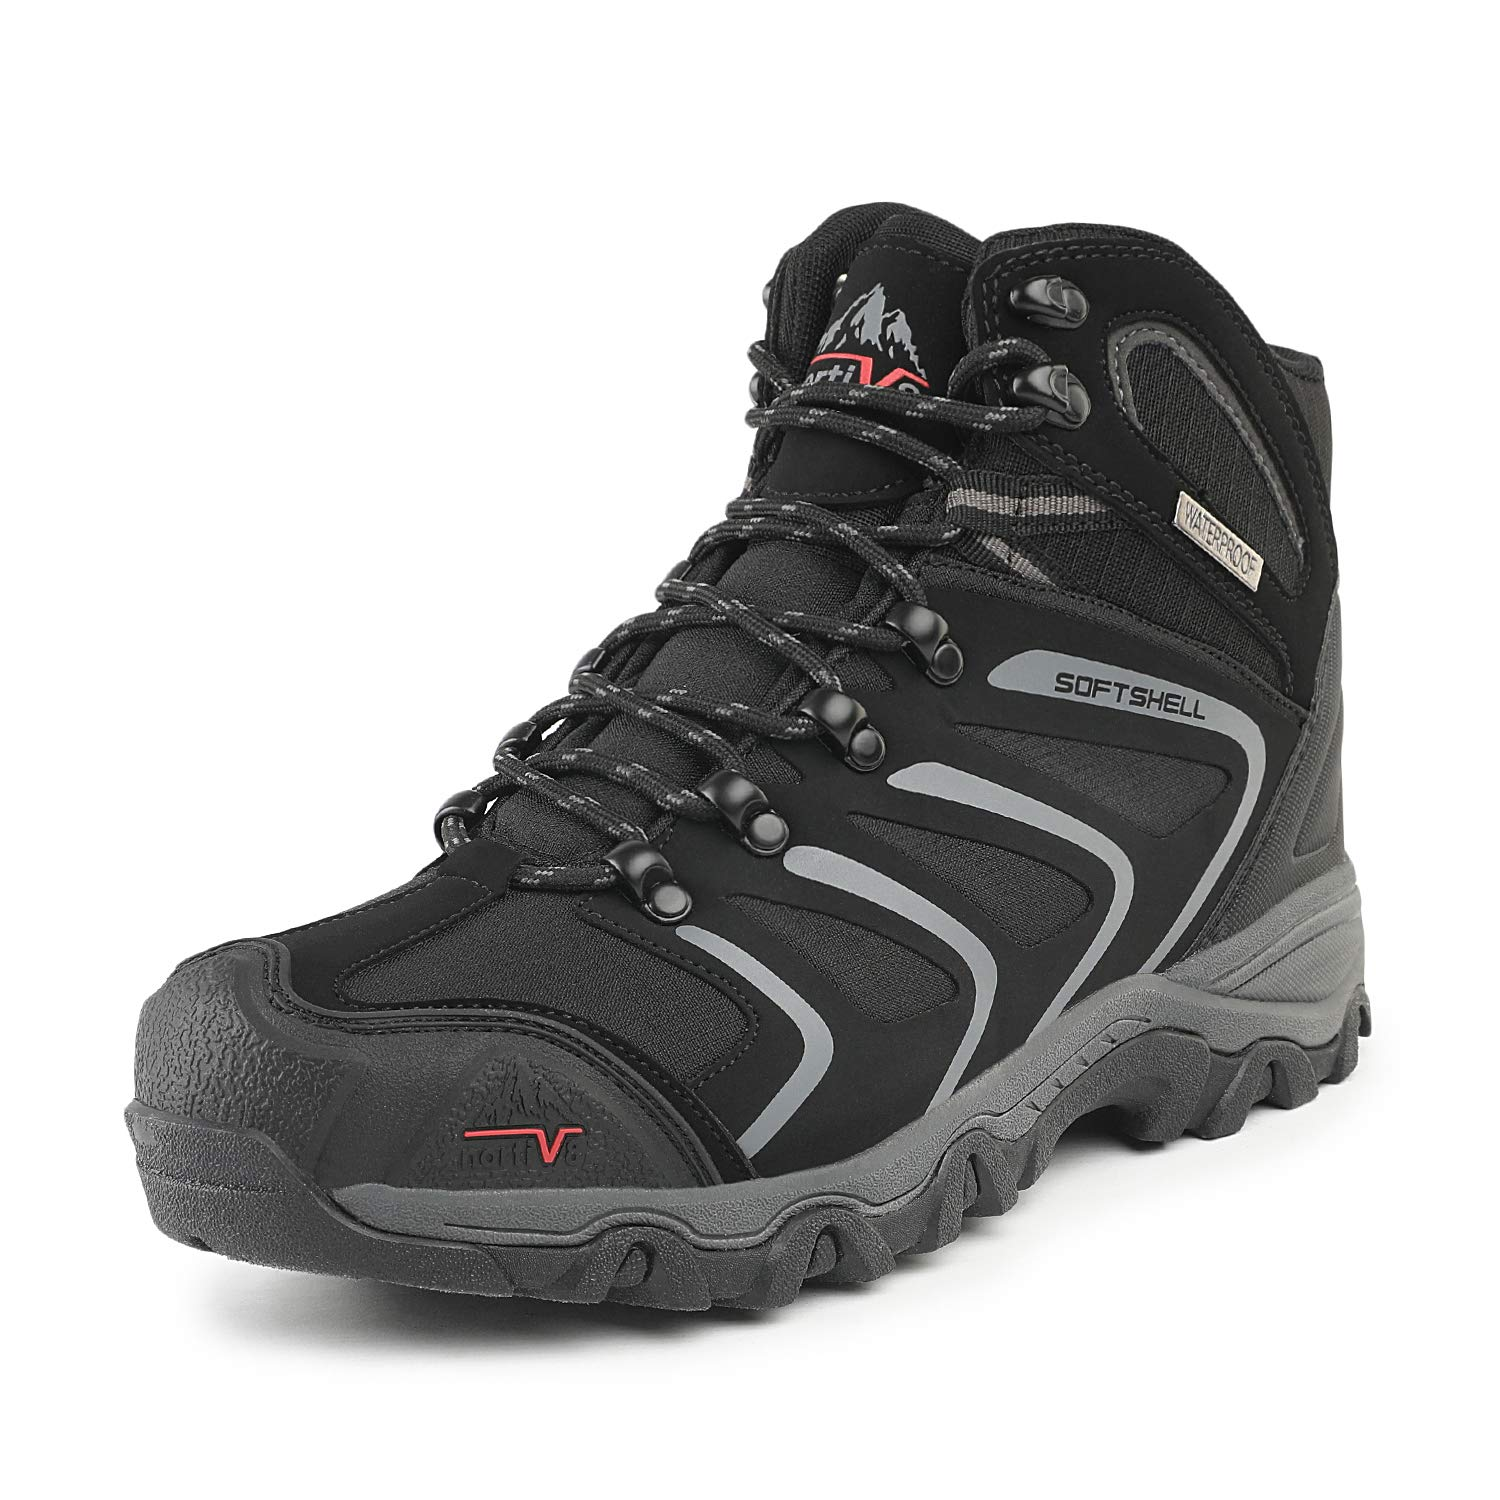 a9ed9d917f2c3 NORTIV 8 Men's Low Top Waterproof Hiking Boots Outdoor Lightweight Shoes  Backpacking Trekking Trails